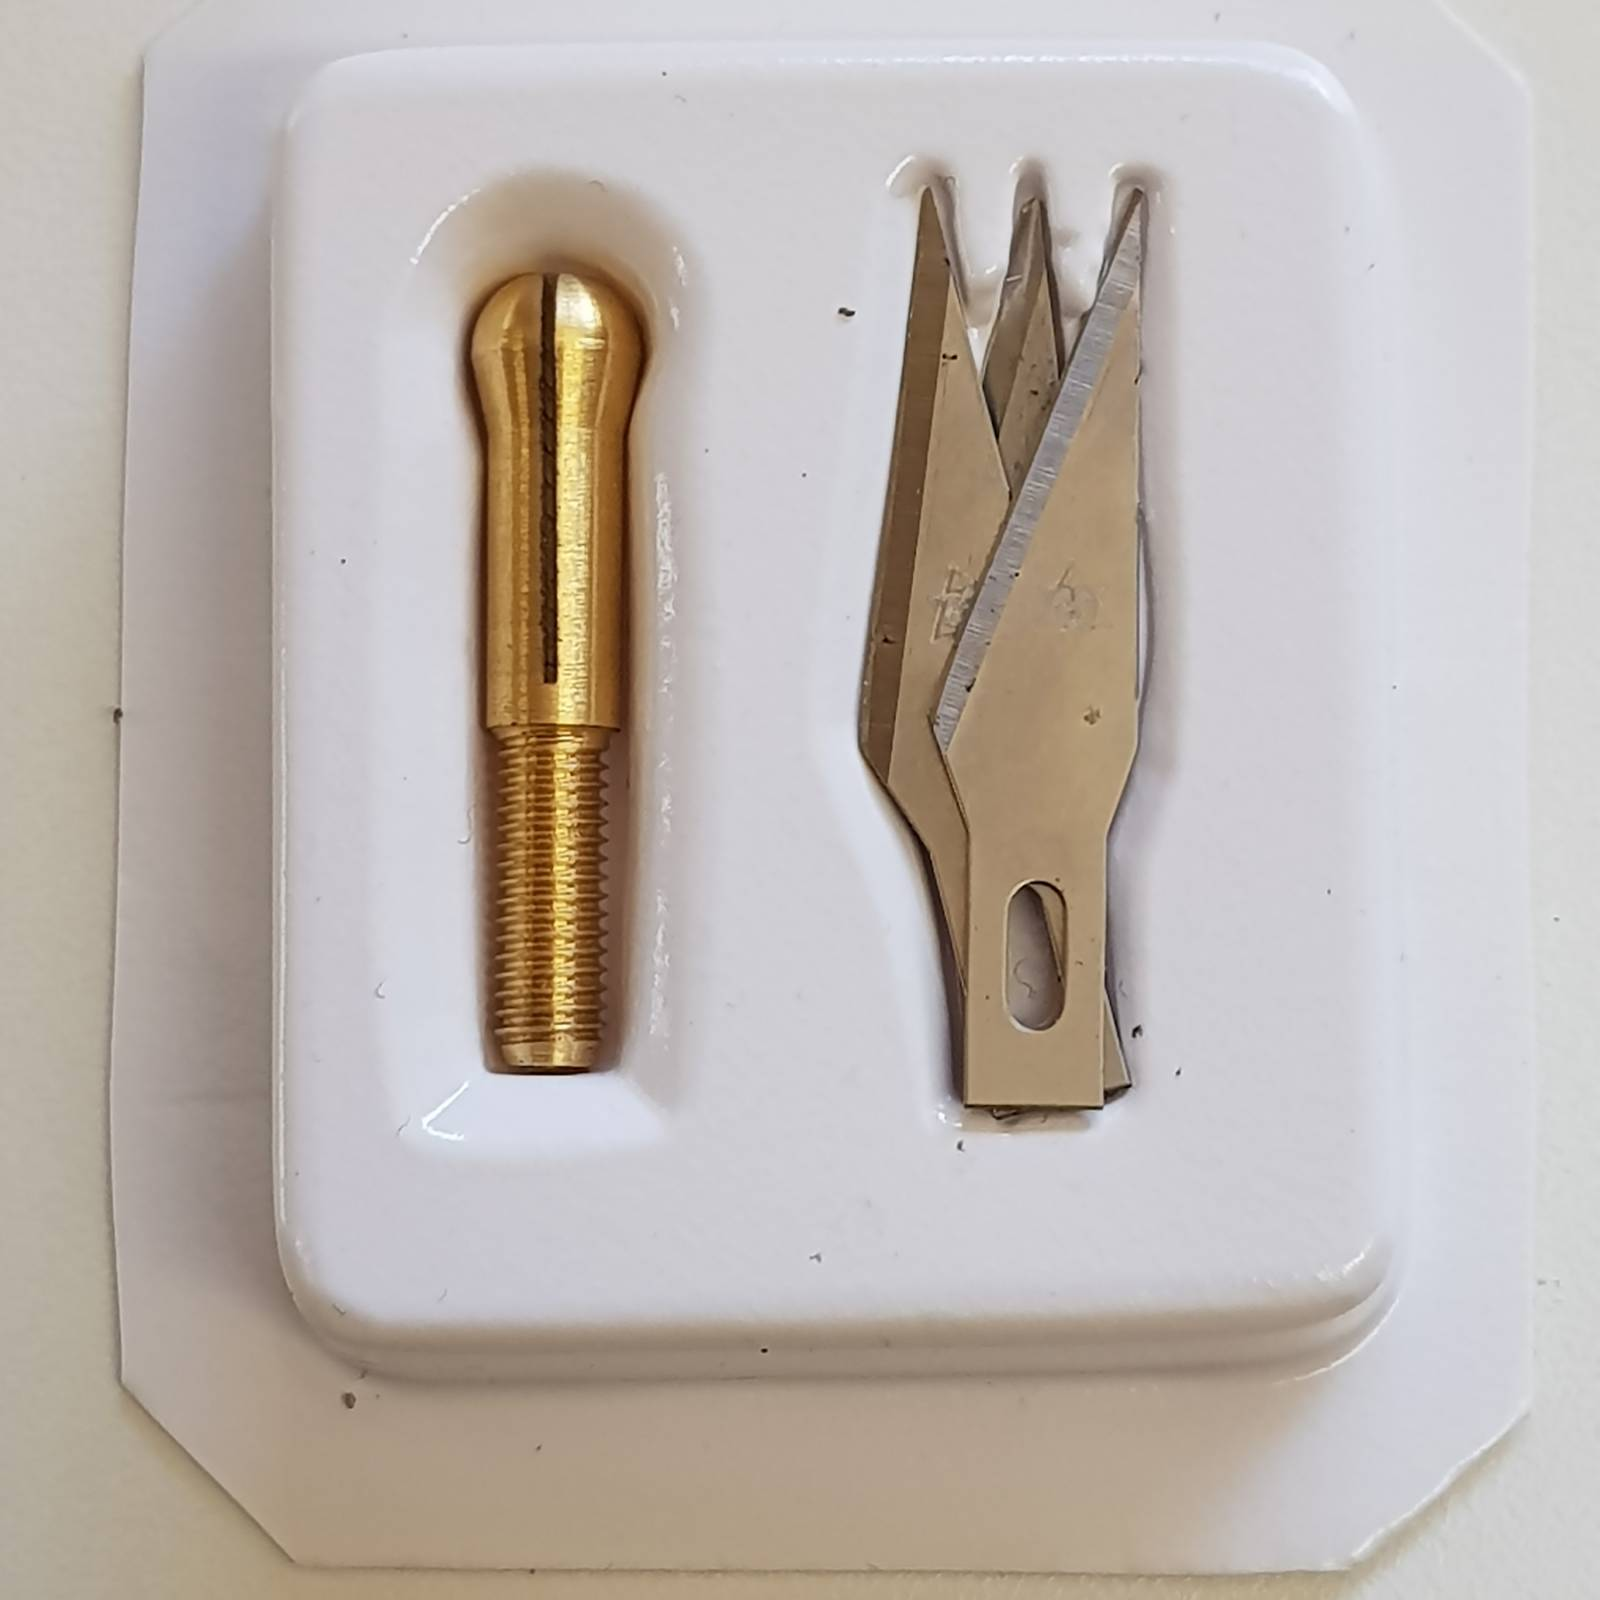 Blister with three blades and tweezers for use on the interchangeable handle